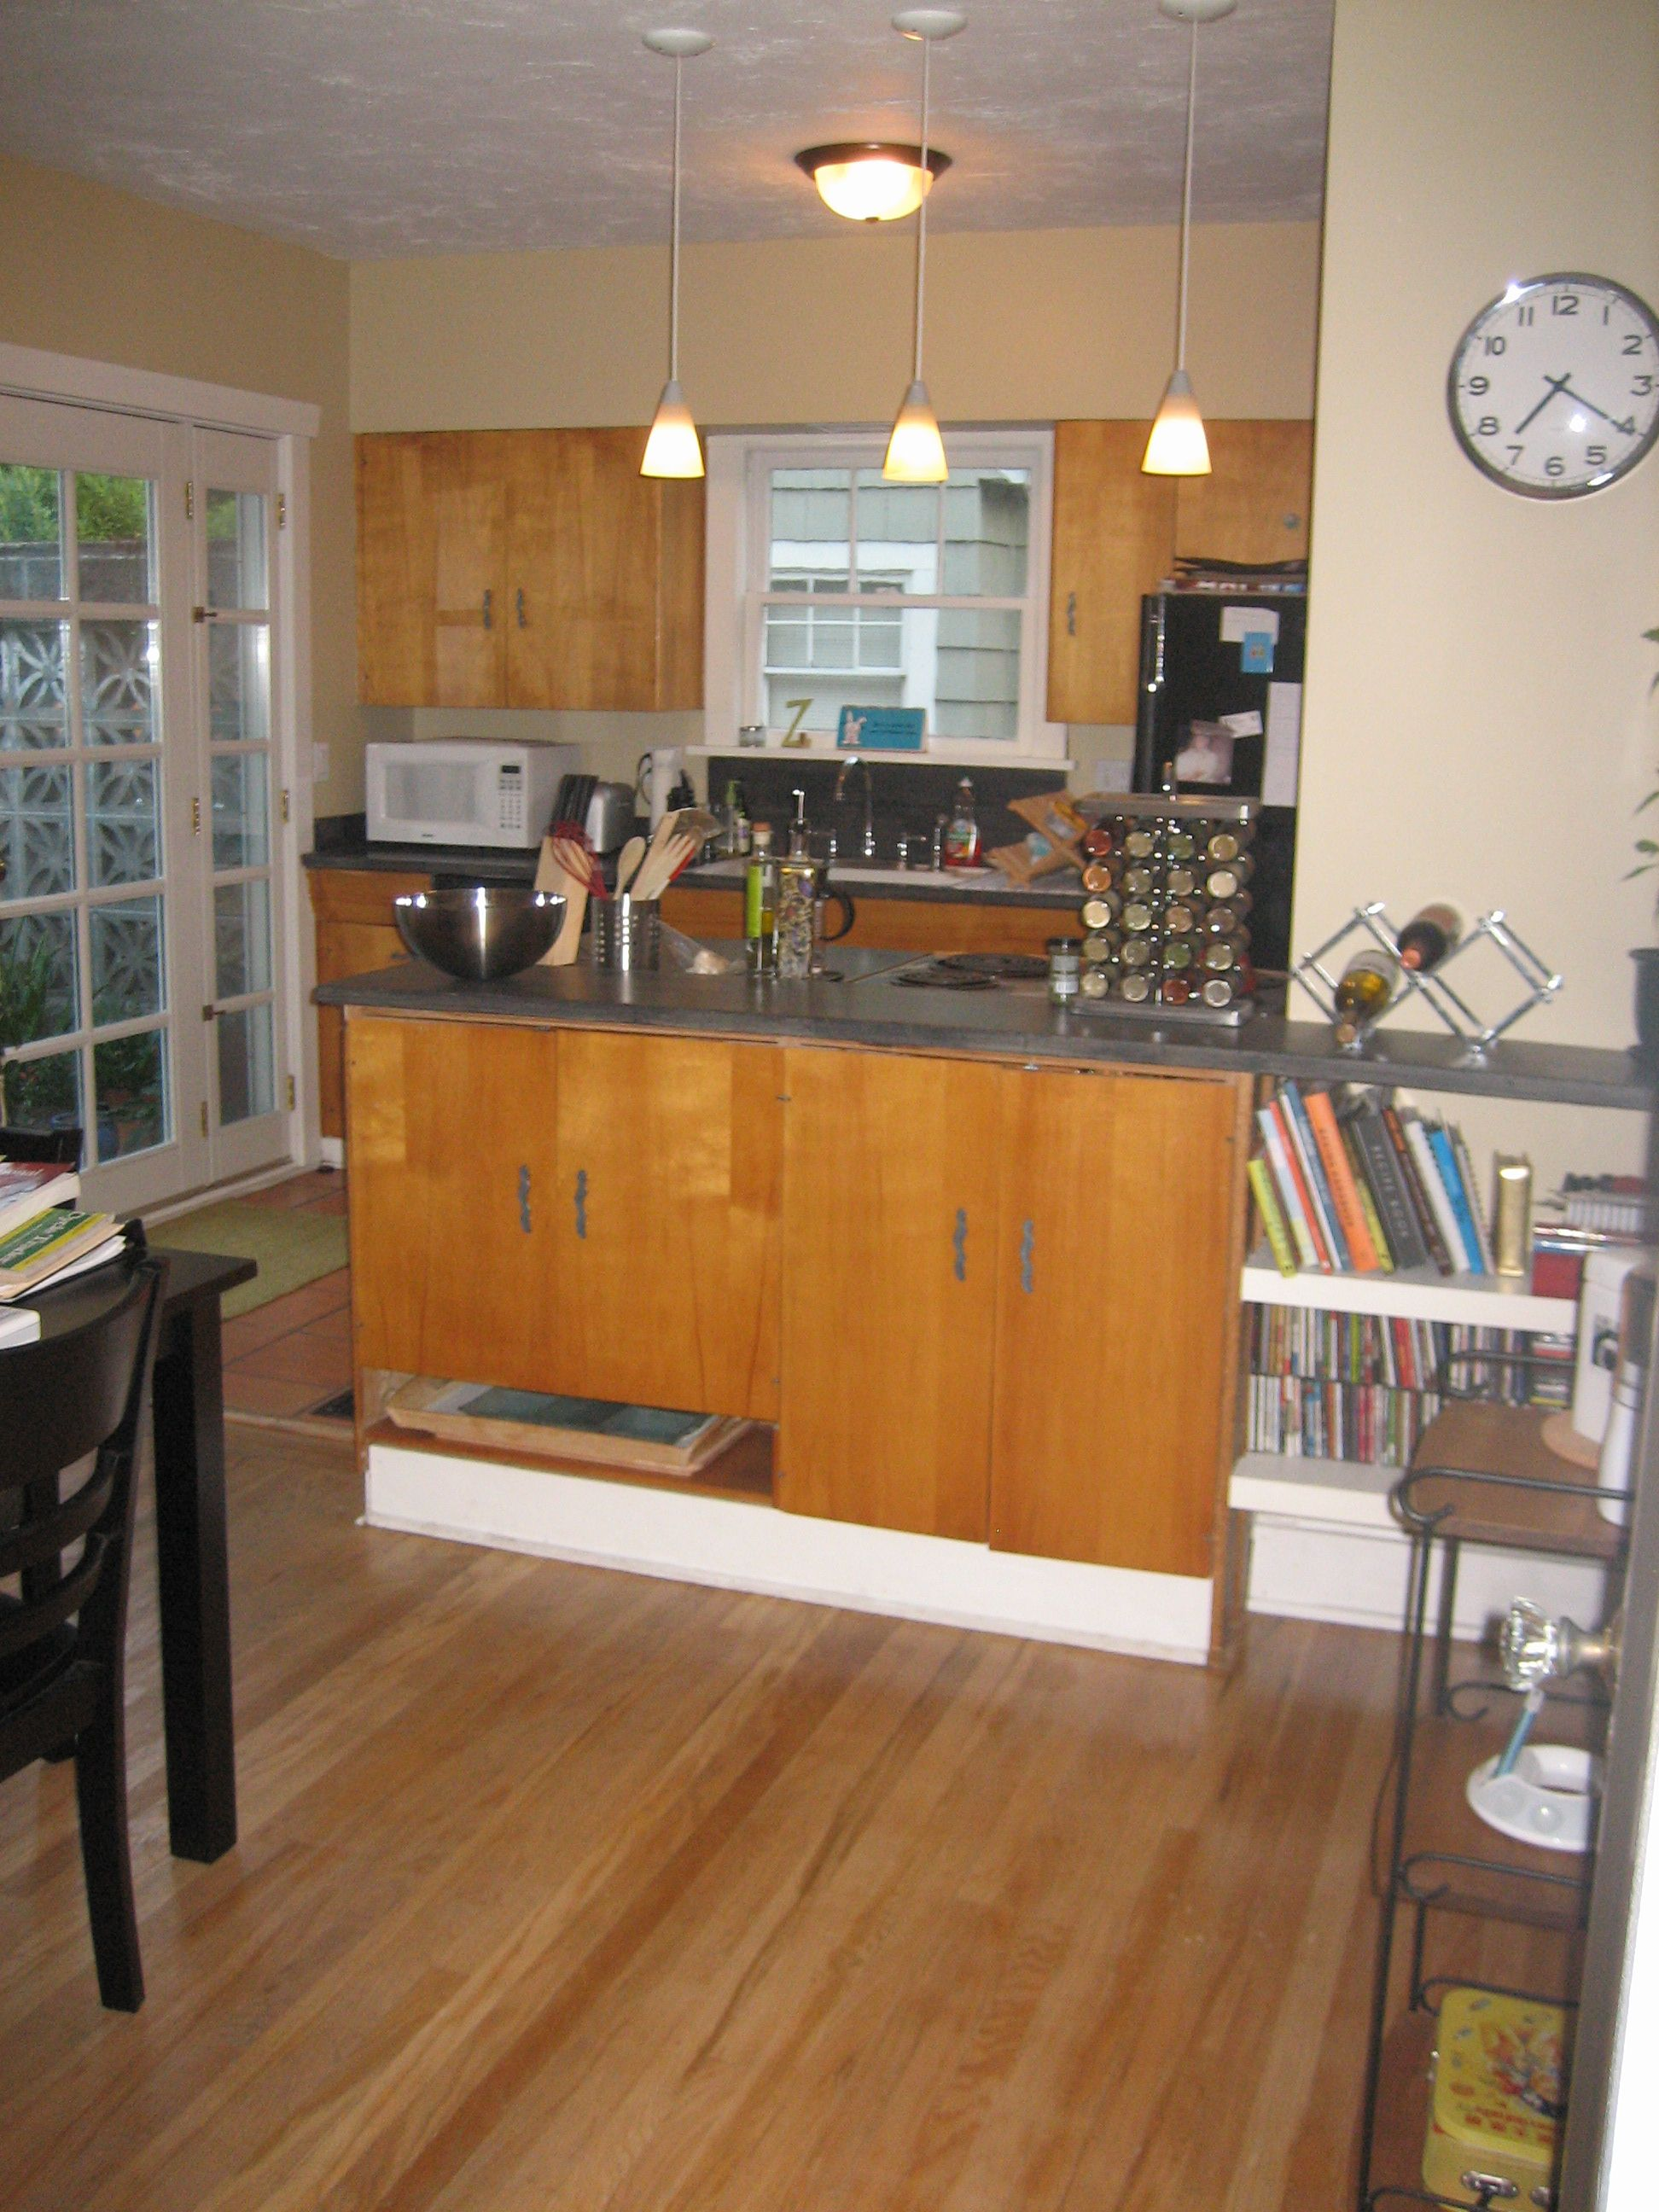 Kitchen Ideas Before And After.Before After Kitchen Remodel Restored Style Kitchen Ideas